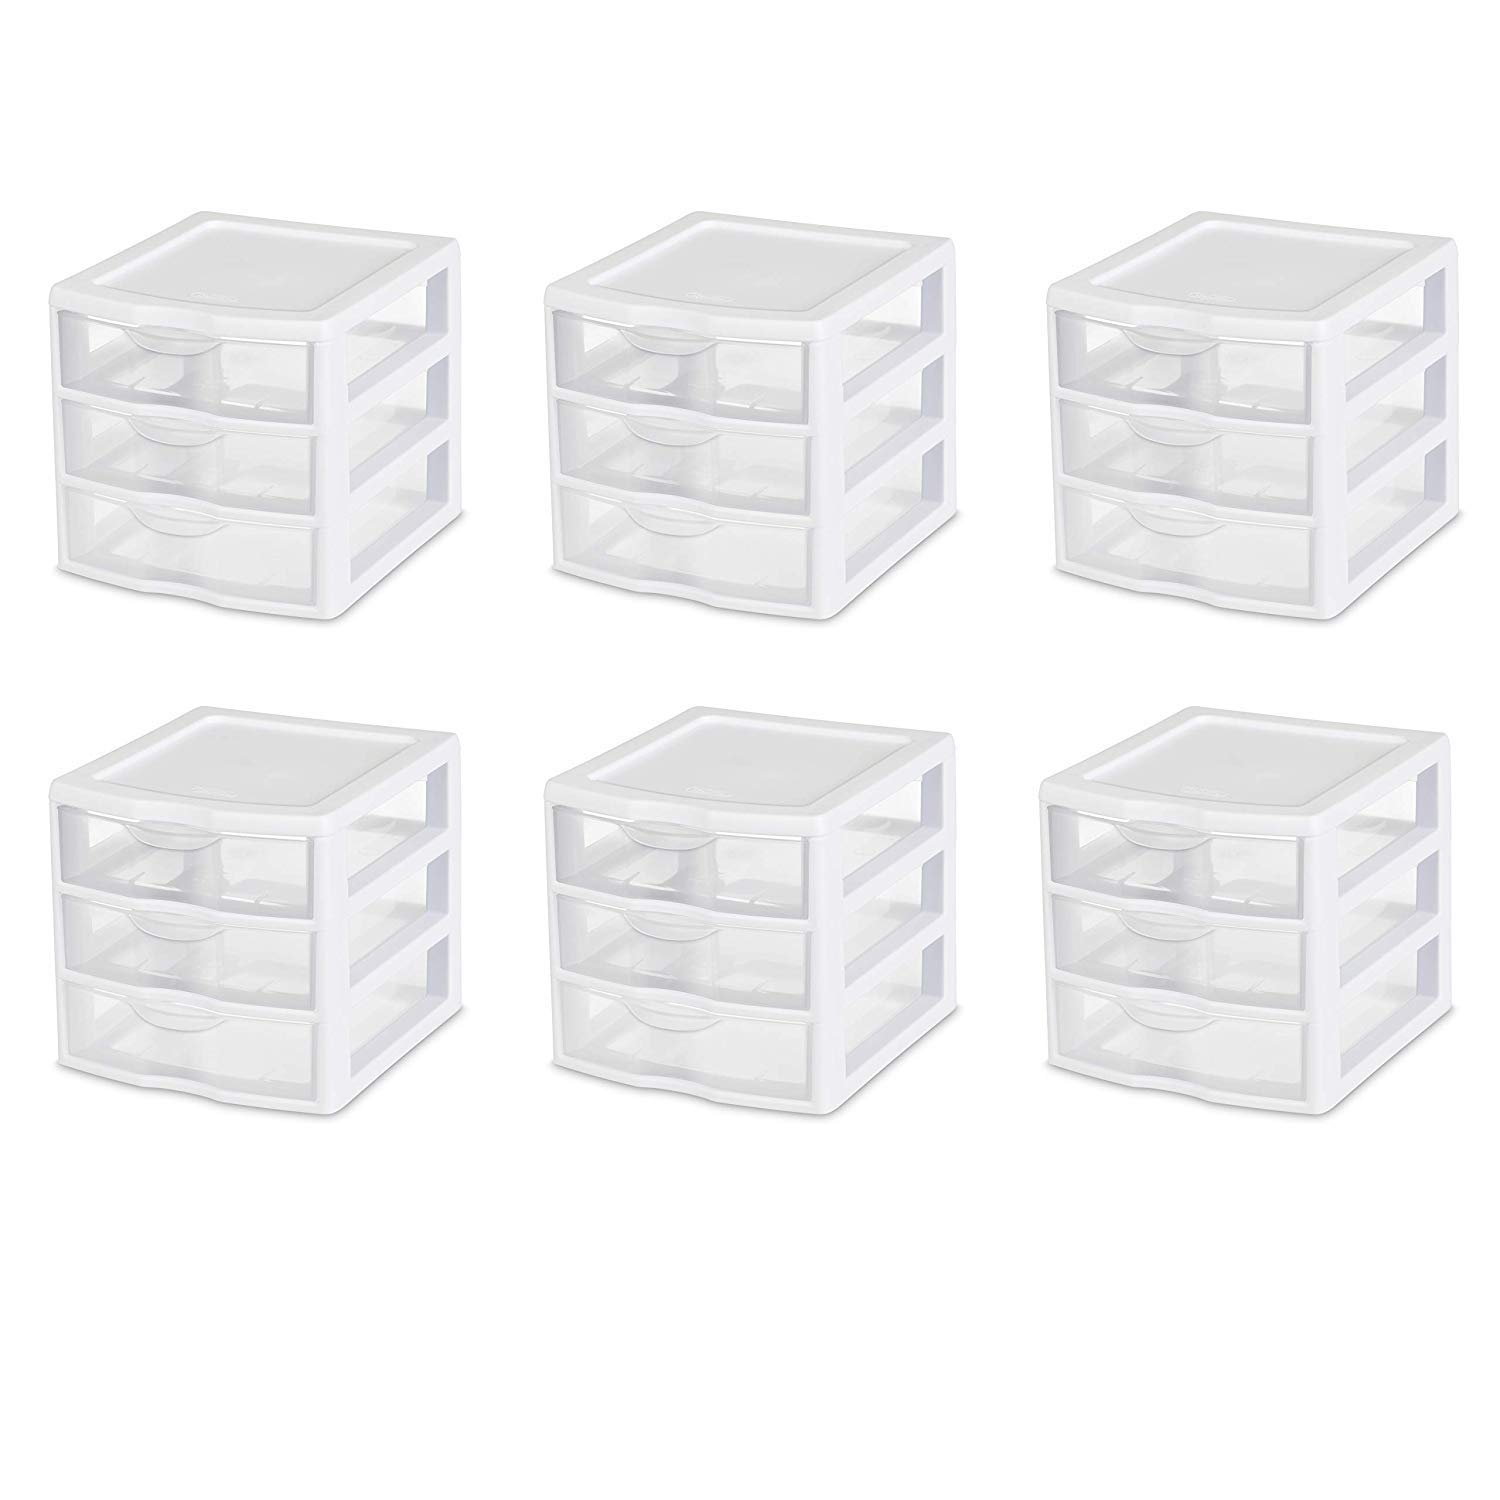 STERILITE Small 3 Drawer Unit, White Frame with Clear Drawers, 6 Pack by STERILITE